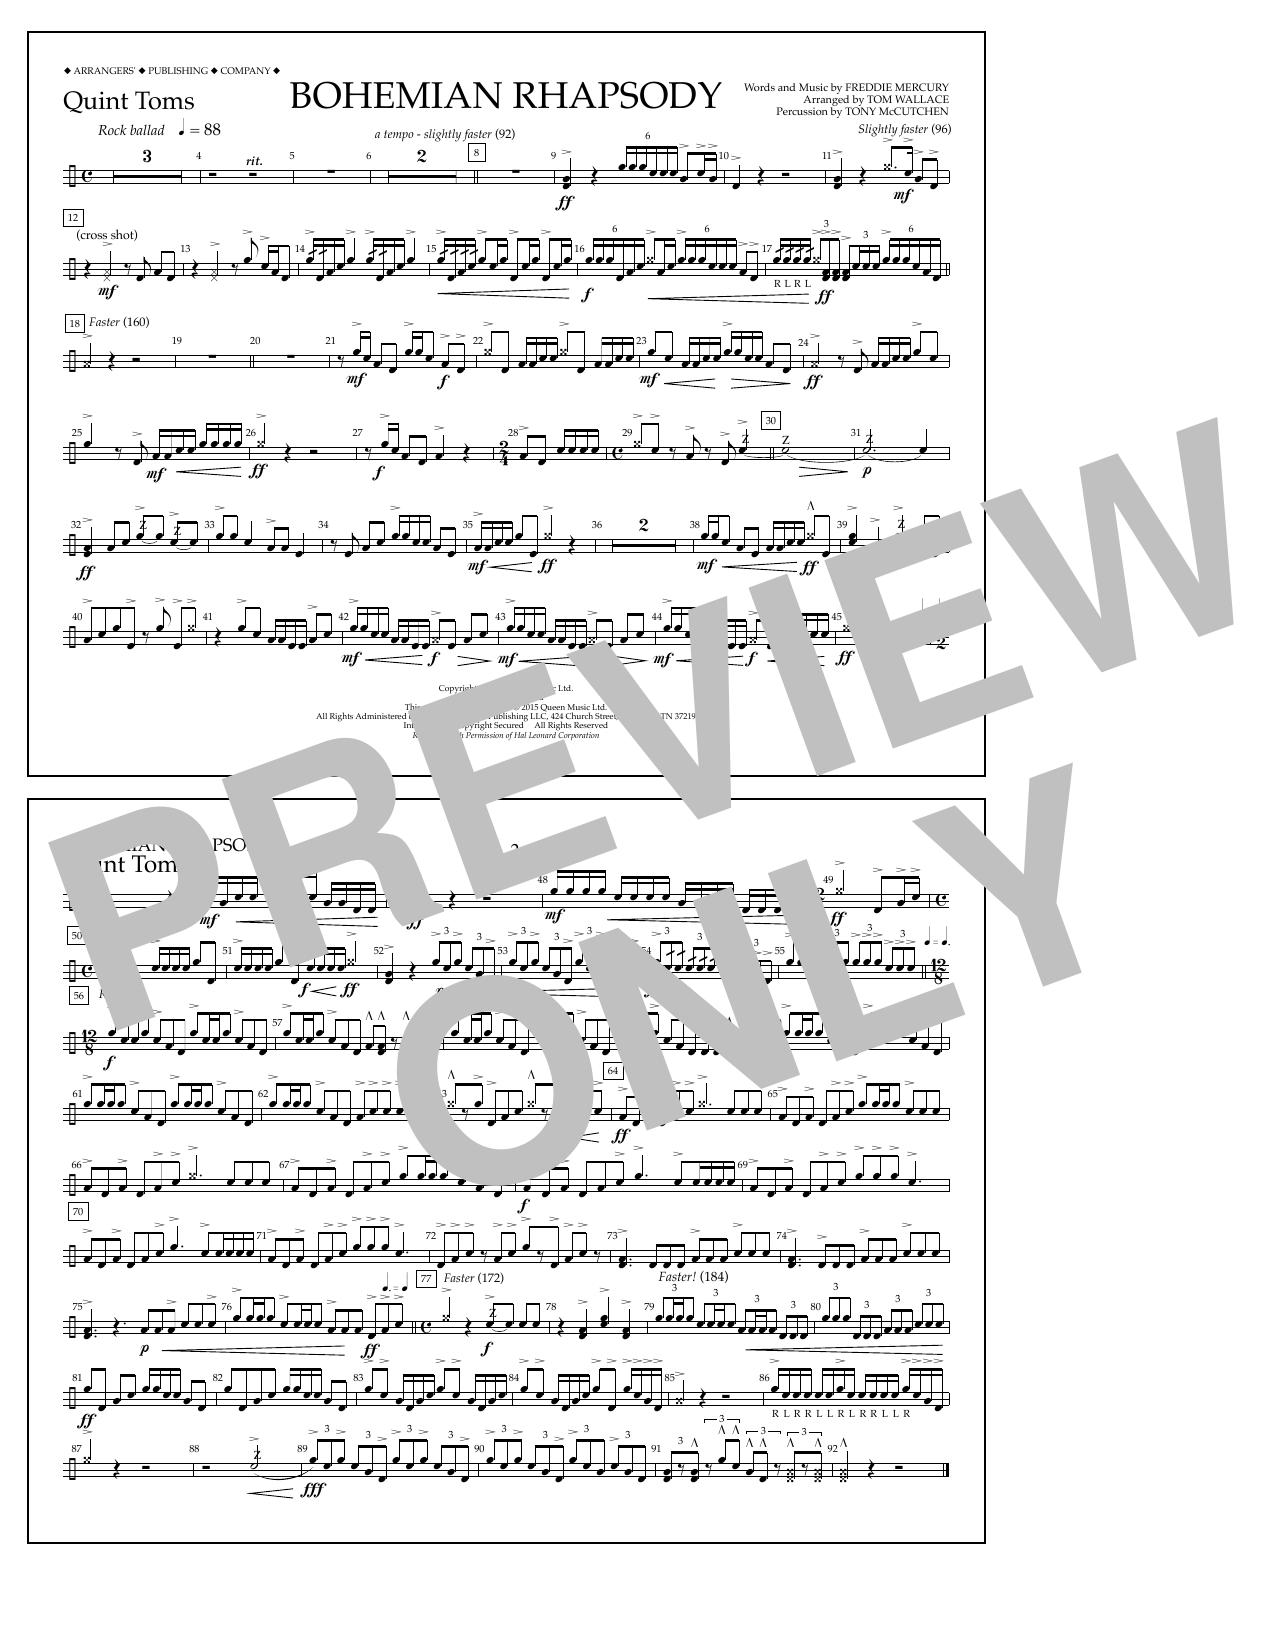 Tom Wallace Bohemian Rhapsody - Quint-Toms sheet music notes and chords. Download Printable PDF.